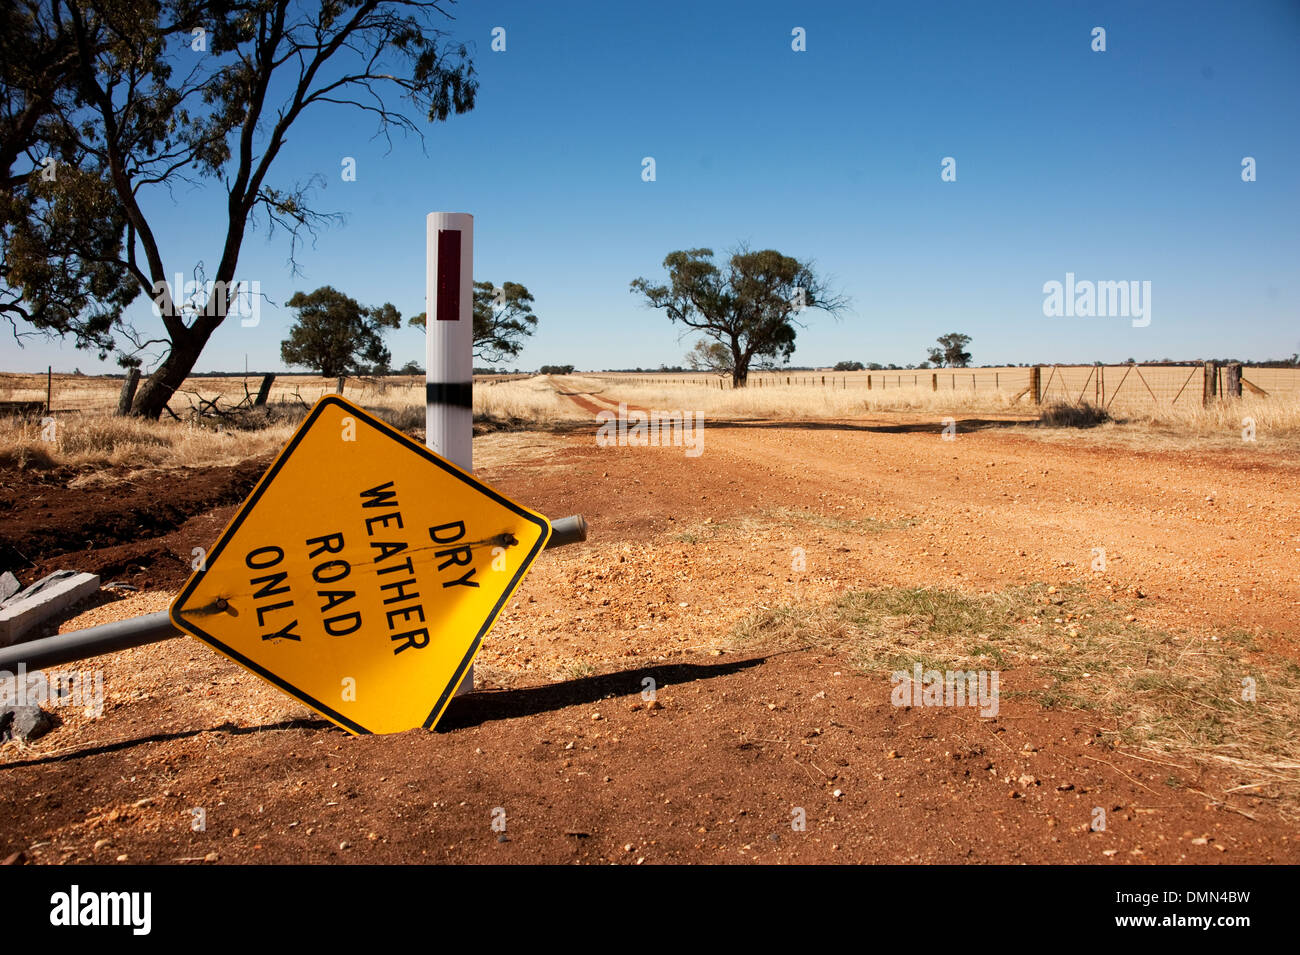 Dry weather sign lying on dry isolated dirt road. - Stock Image